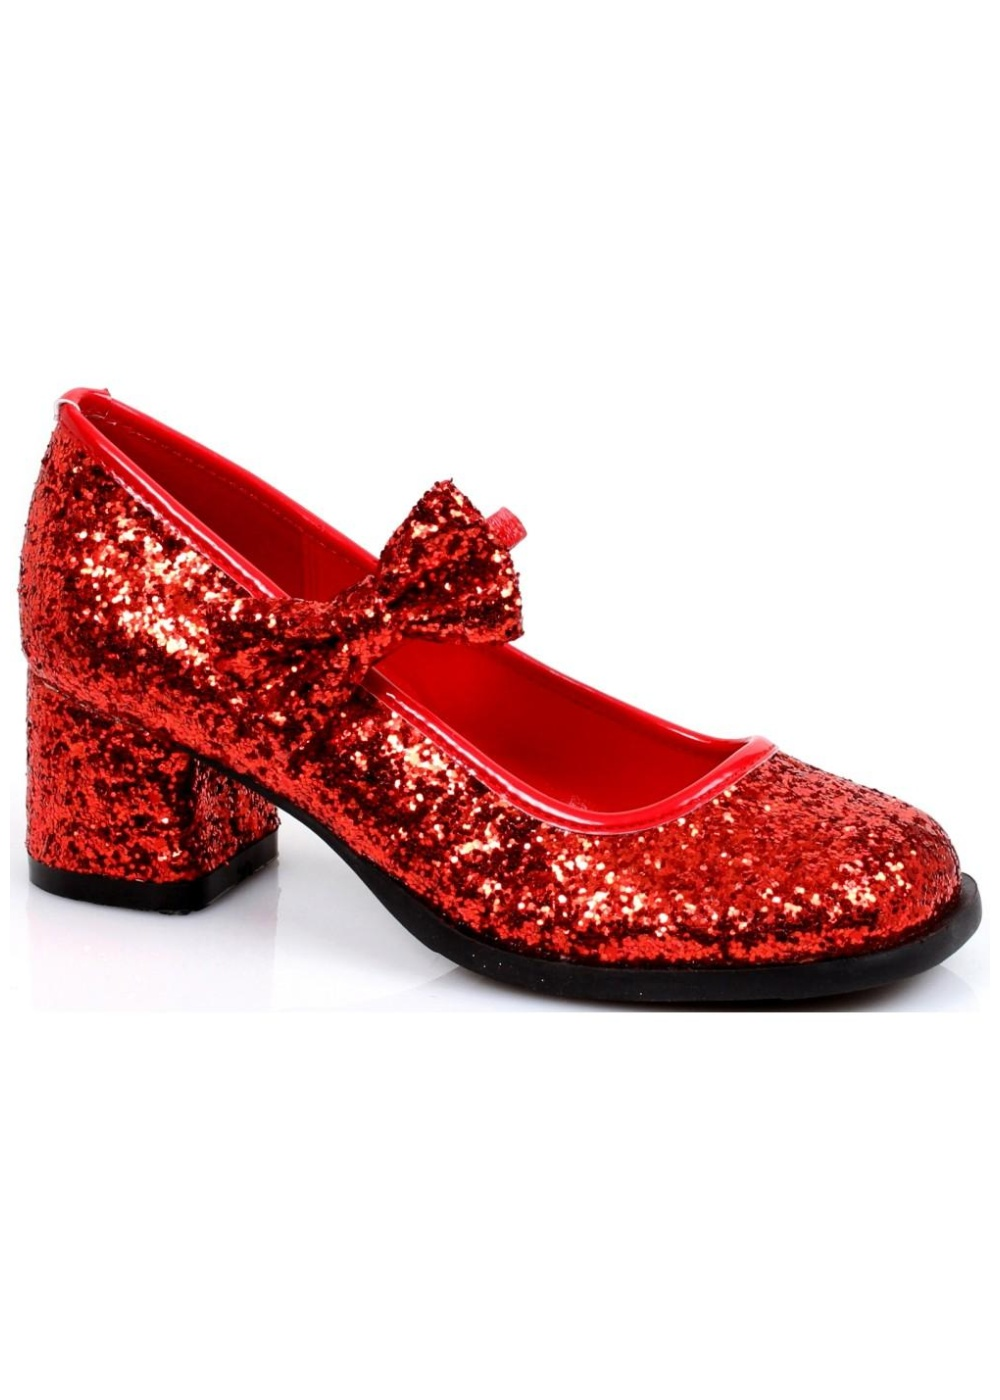 The Sparkle Club is a unique online retailer selling girls shoes perfect for special occasions and dressing up. We have a passion for glitter shoes and we design and source sparkly shoes suitable for babies up to young ladies.